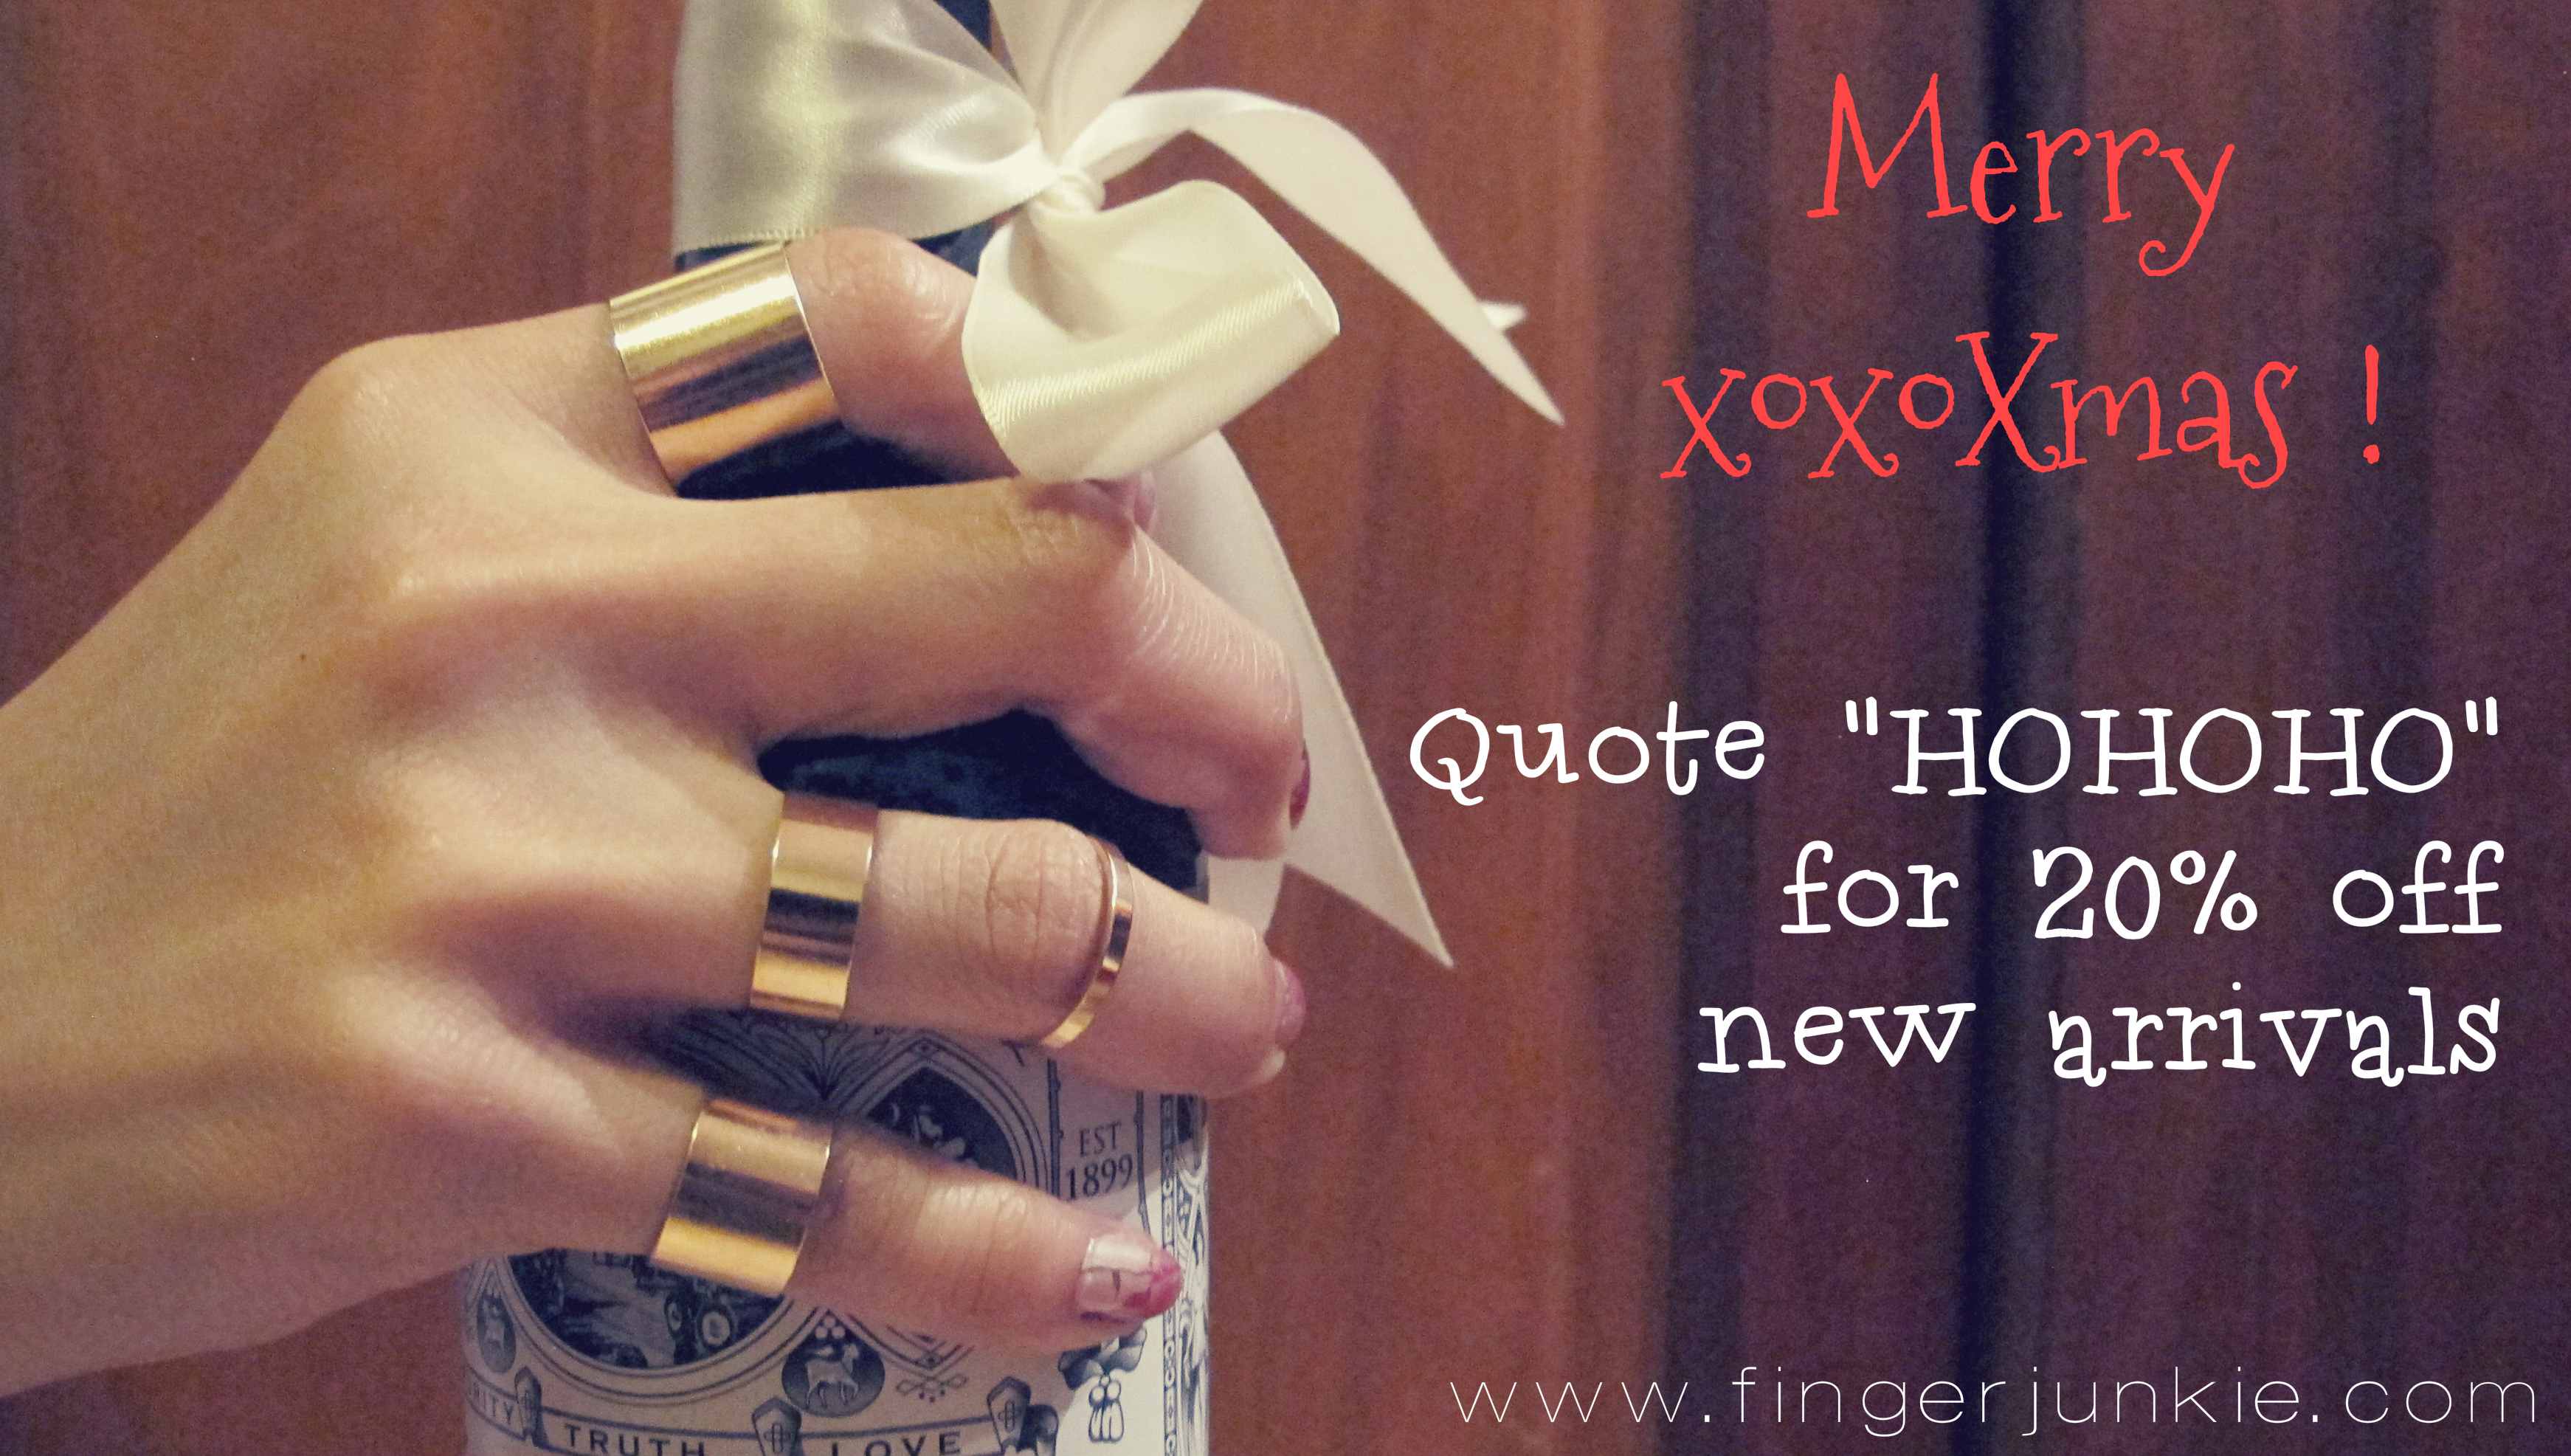 Finger Junkie   Shop affordable unique accessories   Worldwide Shipping